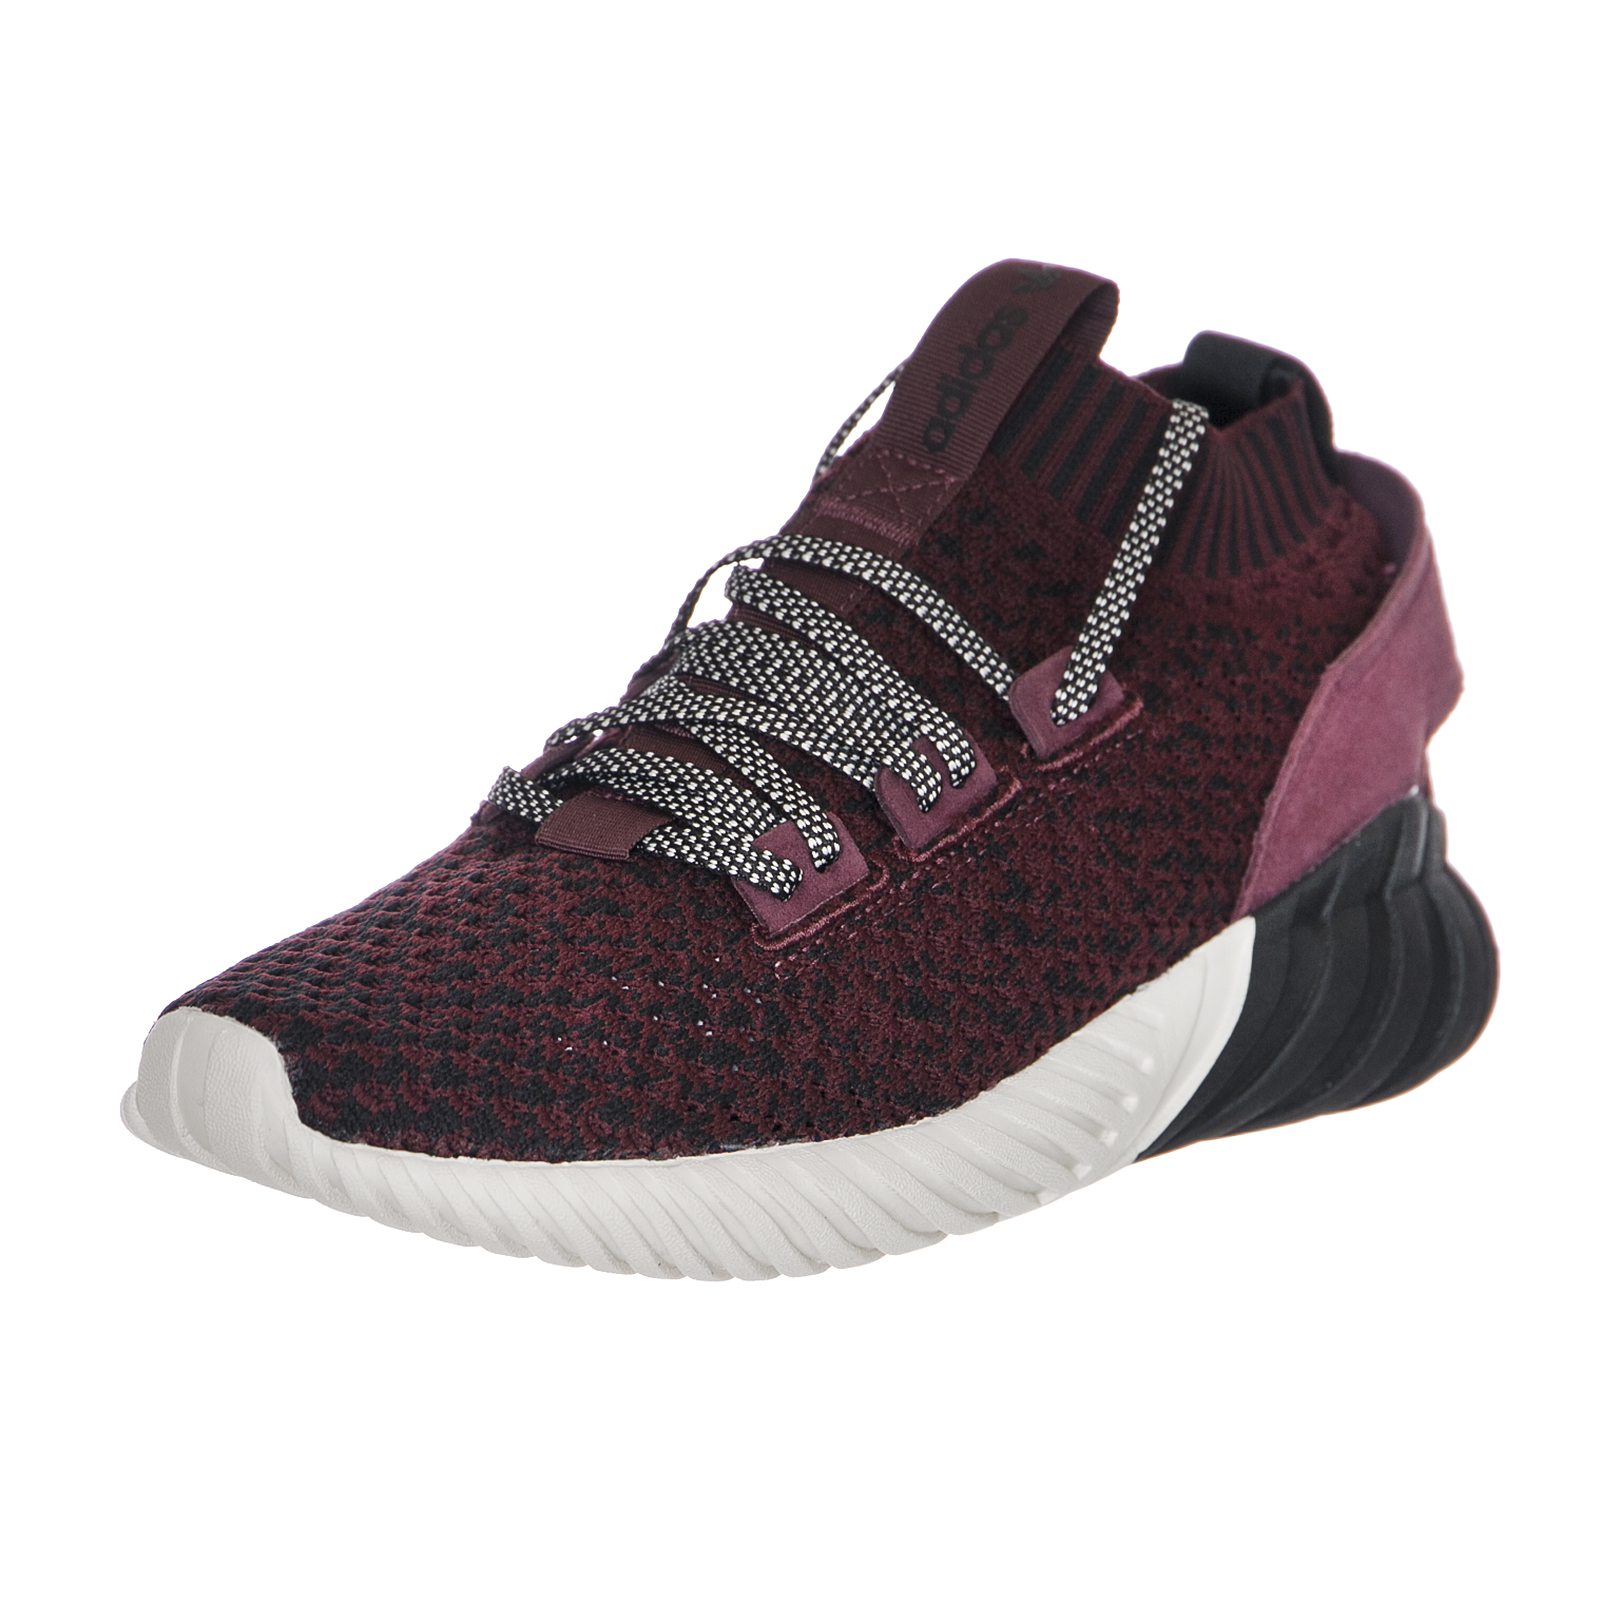 quality design 01fda 5d19e Image is loading Adidas-Tubular-Doom-Sock-P-Cblack-Maroon-C-